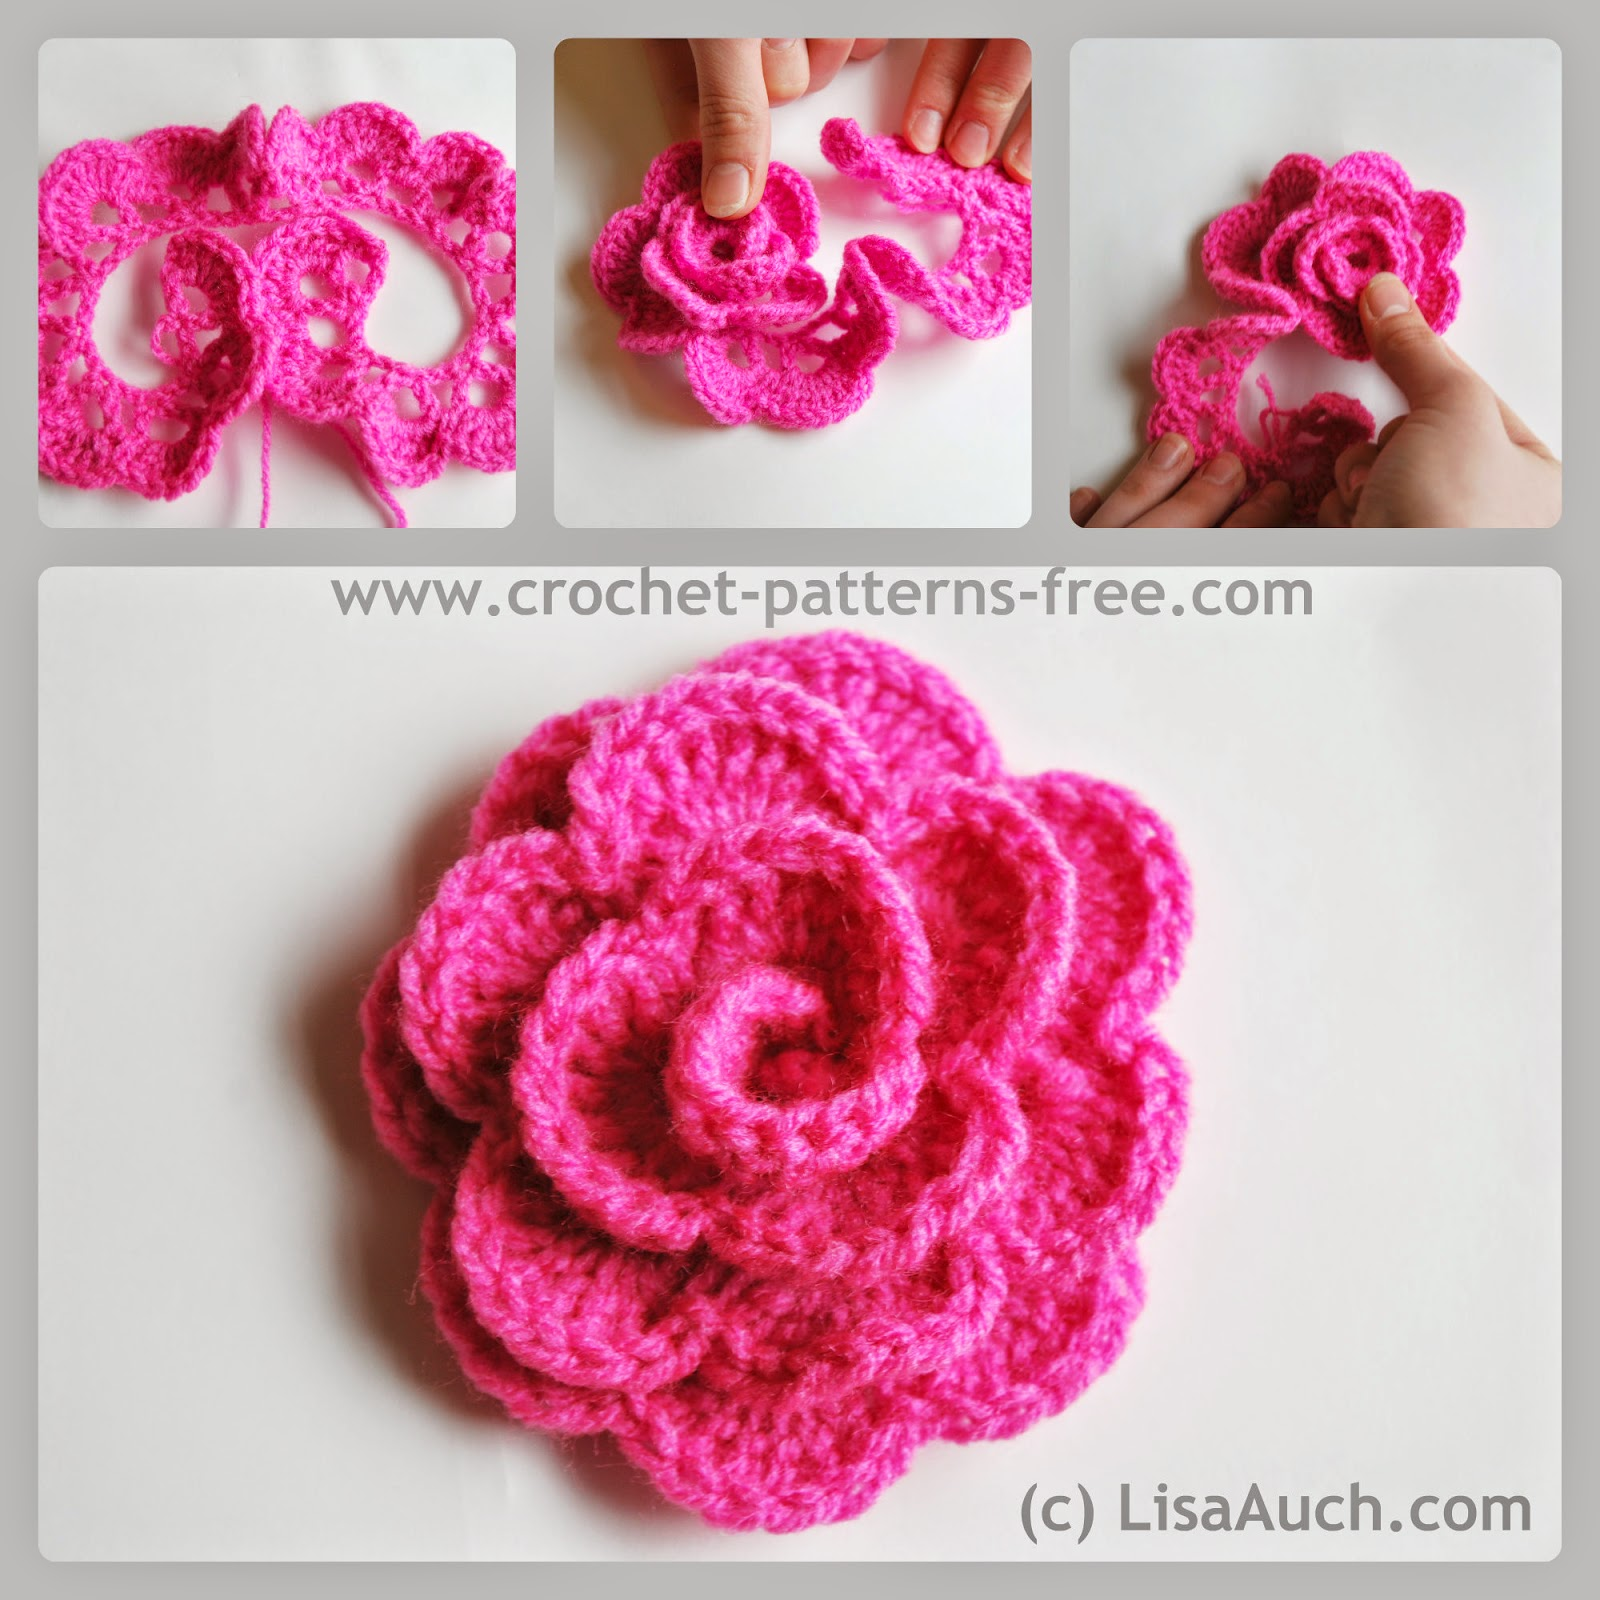 Crochet Thread Rose Pattern Free : Rose Hip Blog Crochet Flower Pattern 2016 Car Release Date